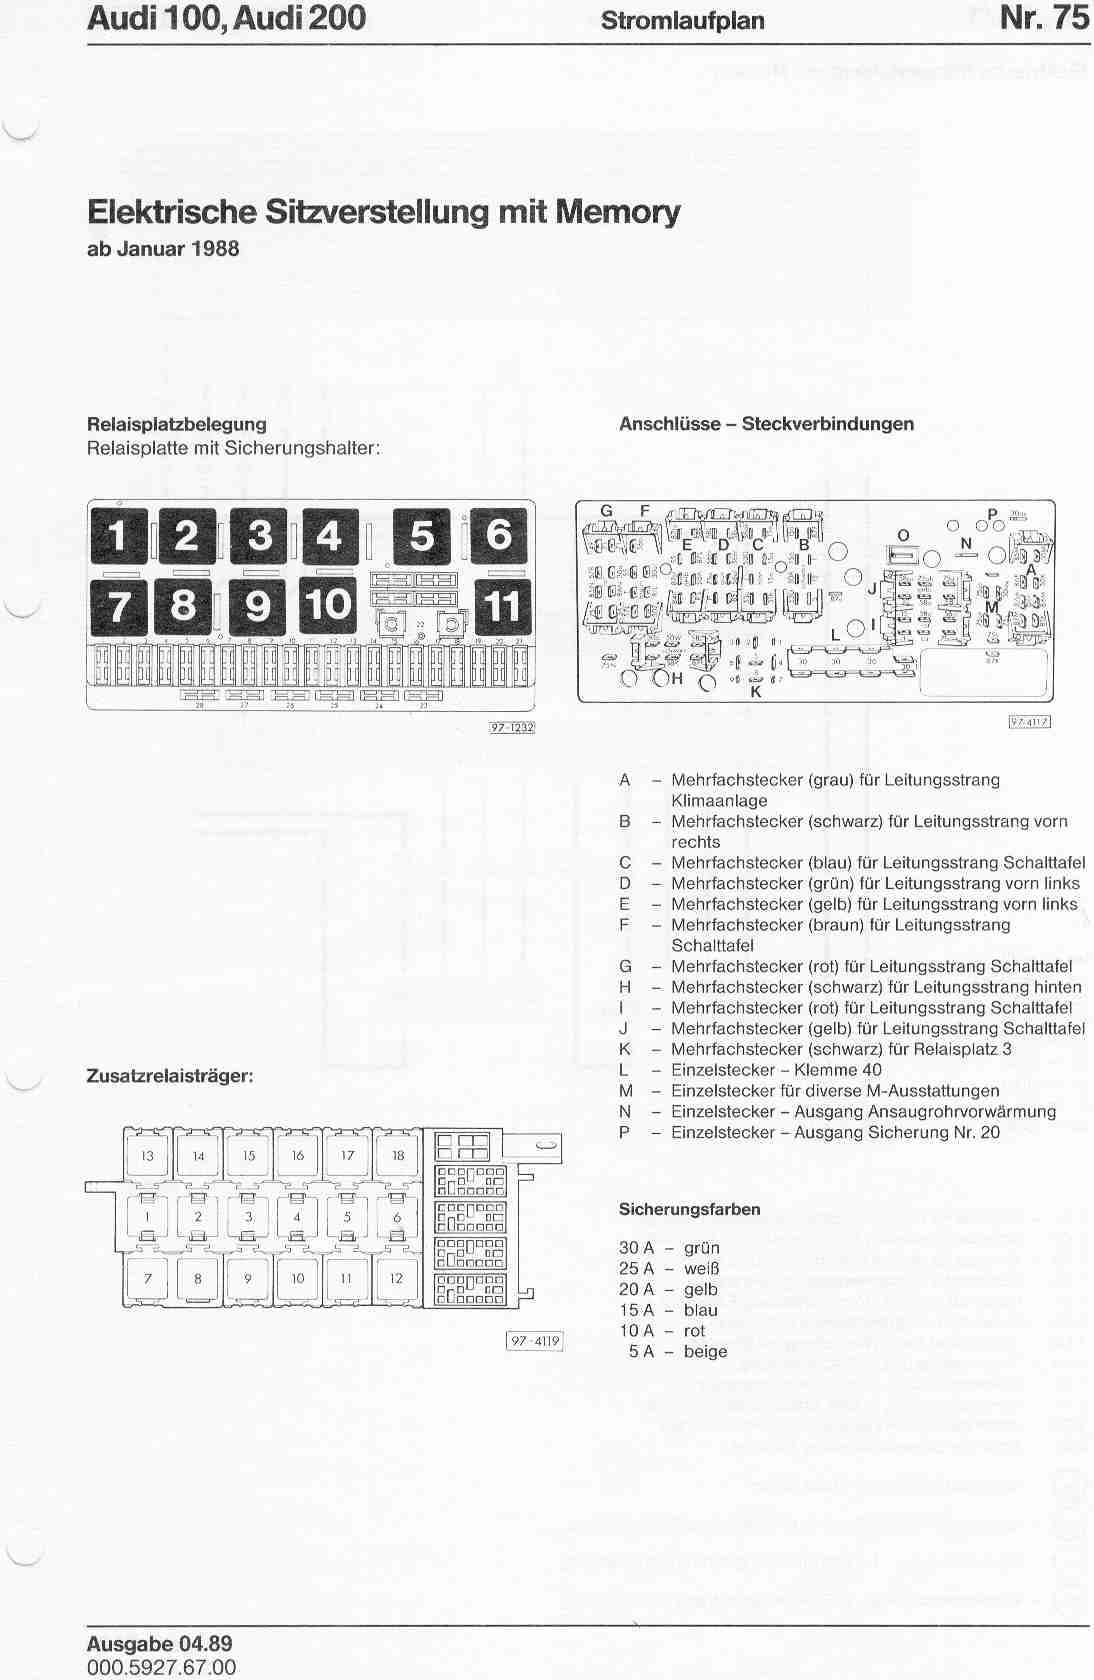 1993 audi 100 wiring diagram wiring diagram rh jh pool de audi 80 tdi wiring diagram audi 80 b4 wiring diagram